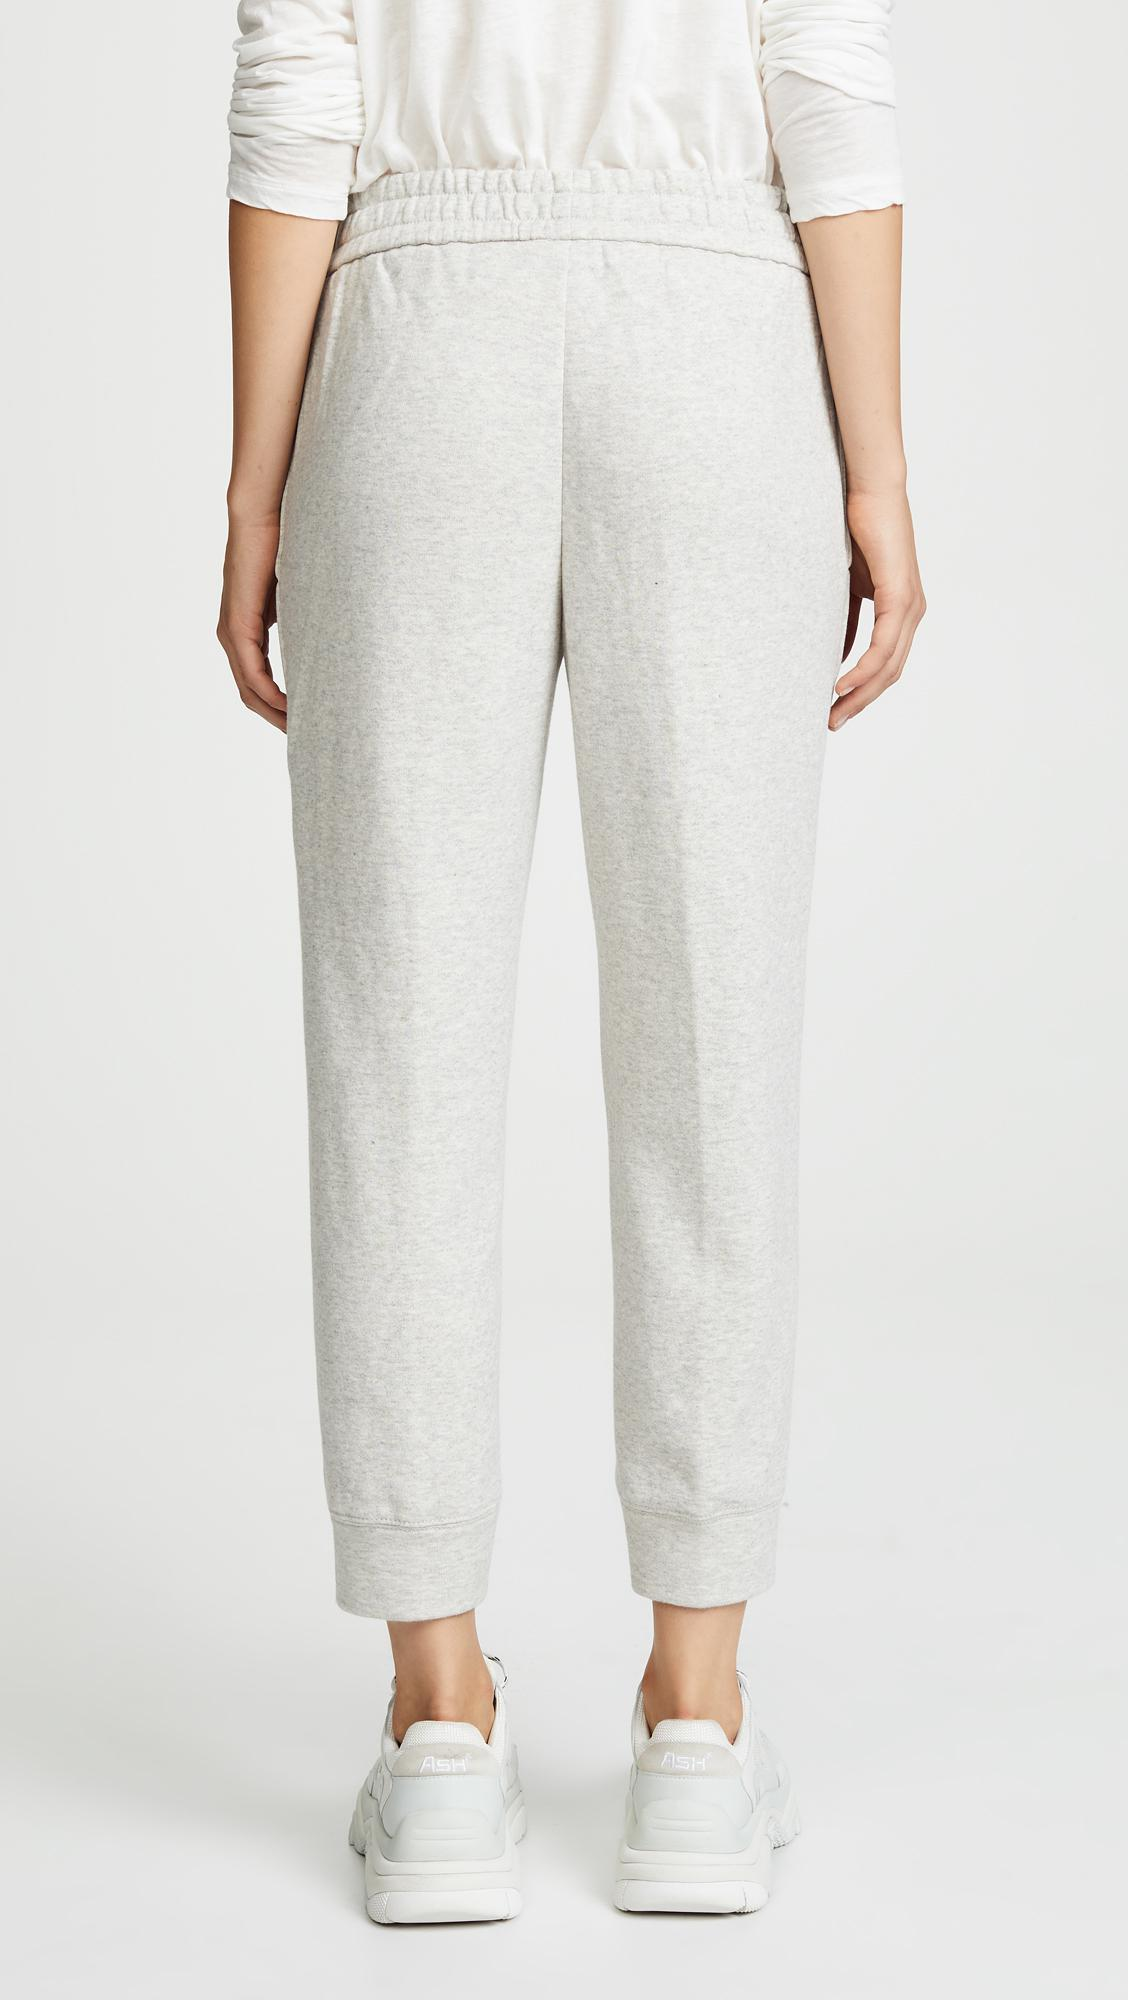 71dec98d063 Lyst - James Perse Relaxed Luxe Sweatpants in Gray